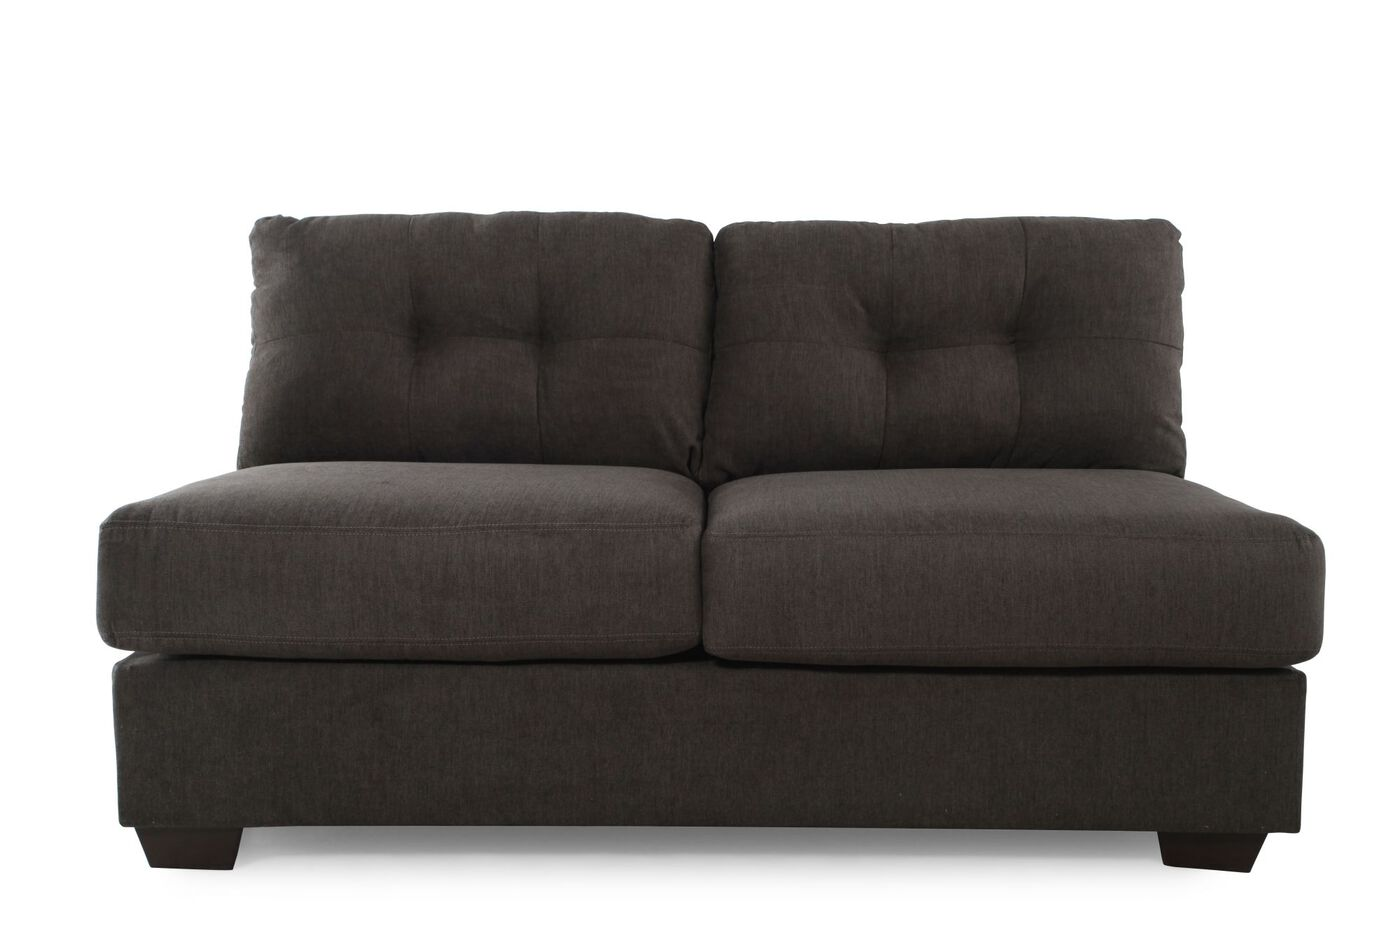 Tufted Microfiber 64 Armless Loveseat In Gray Mathis Brothers Furniture